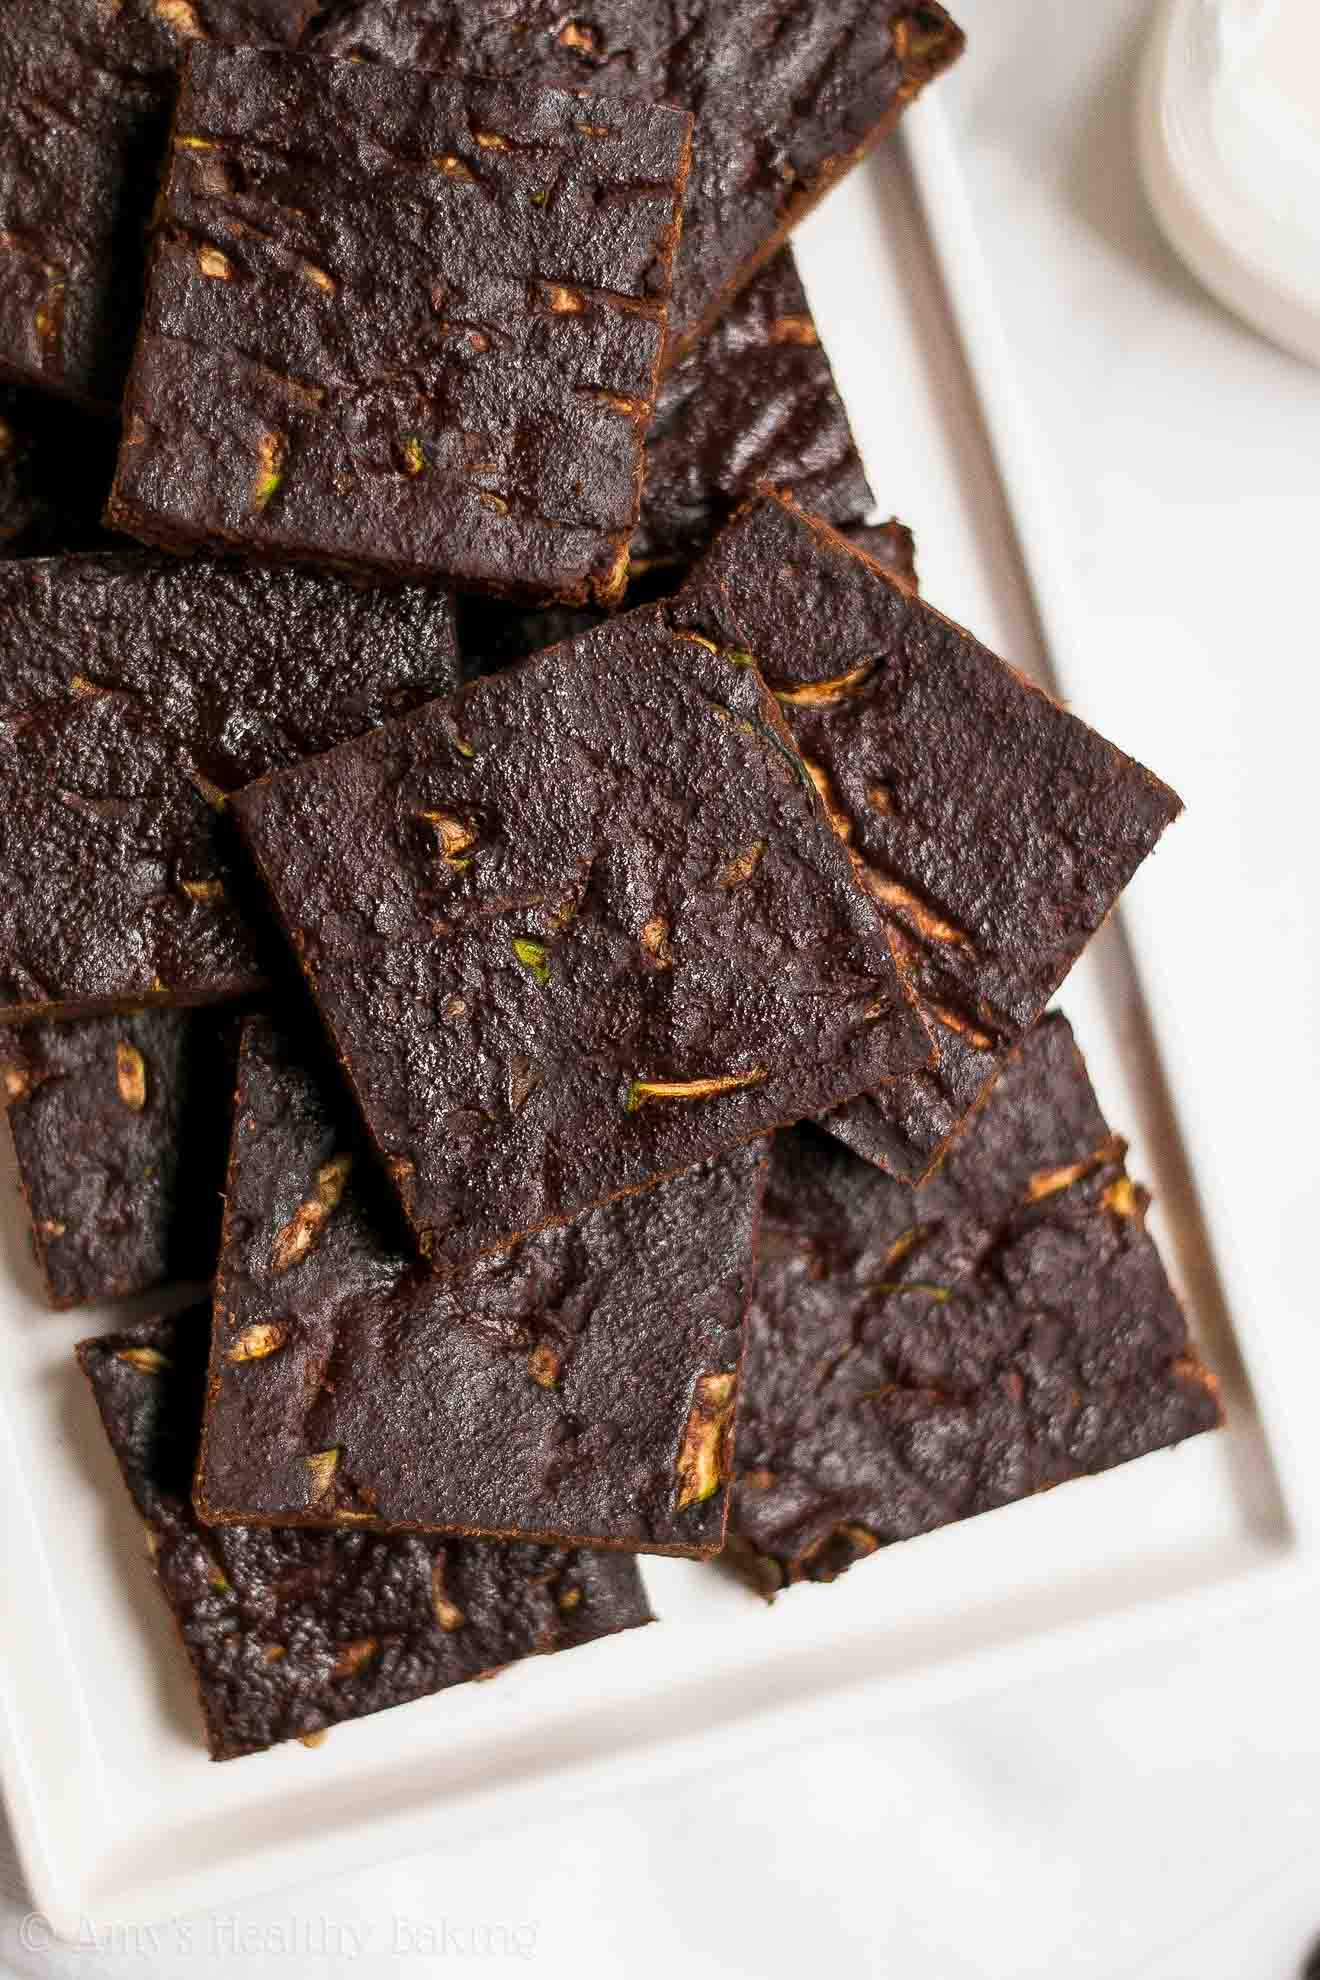 Easy Healthy Low Fat Chocolate Zucchini Brownies